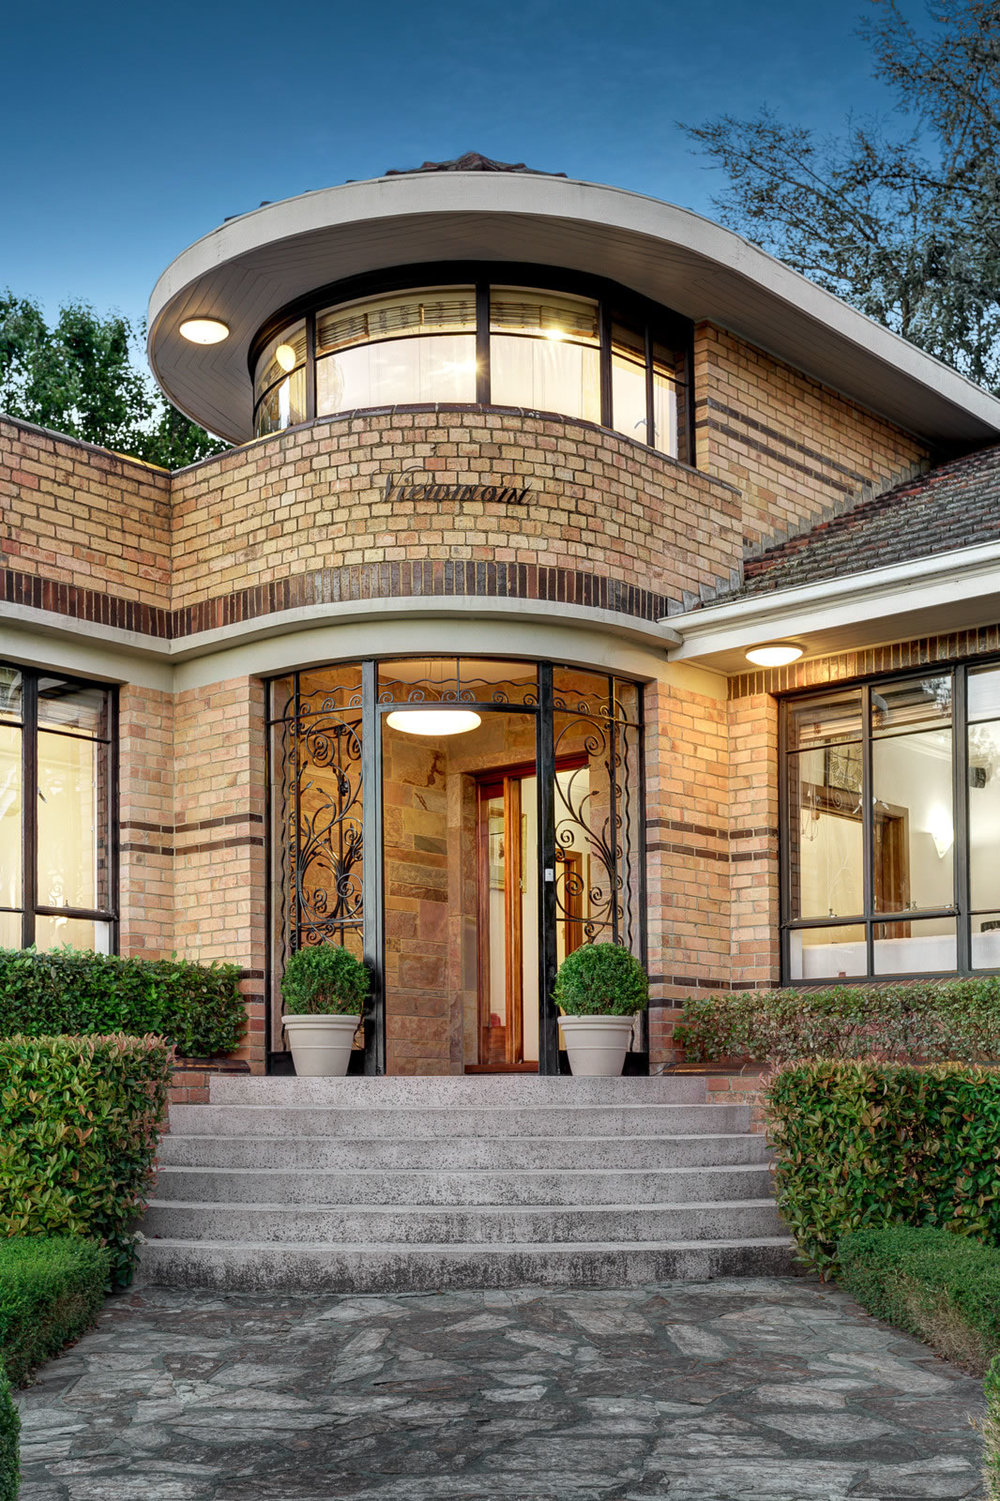 Historical architectural style the art deco waterfall for House architecture styles